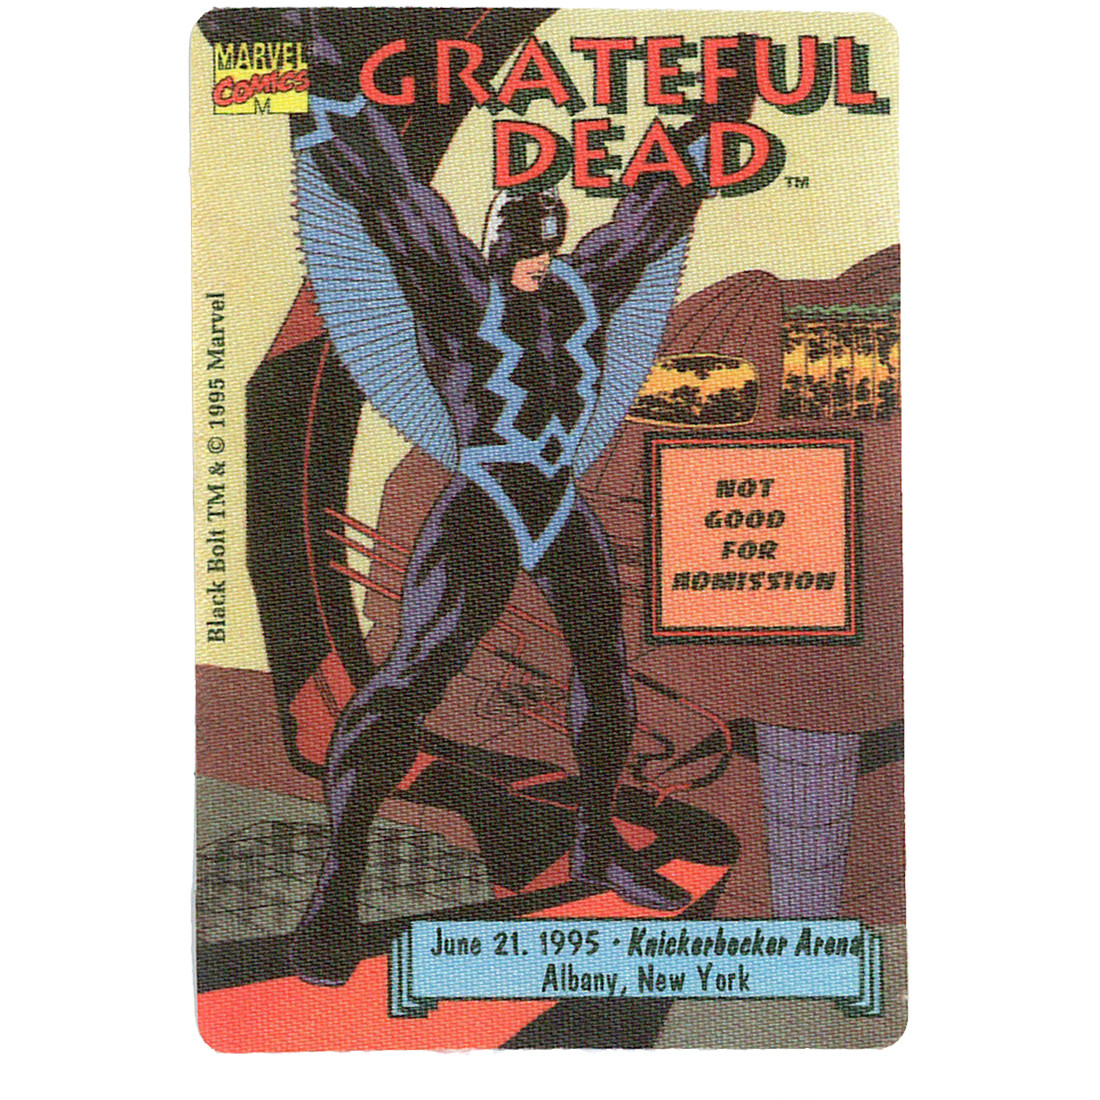 Grateful Dead 1995 06-21 Backstage Pass